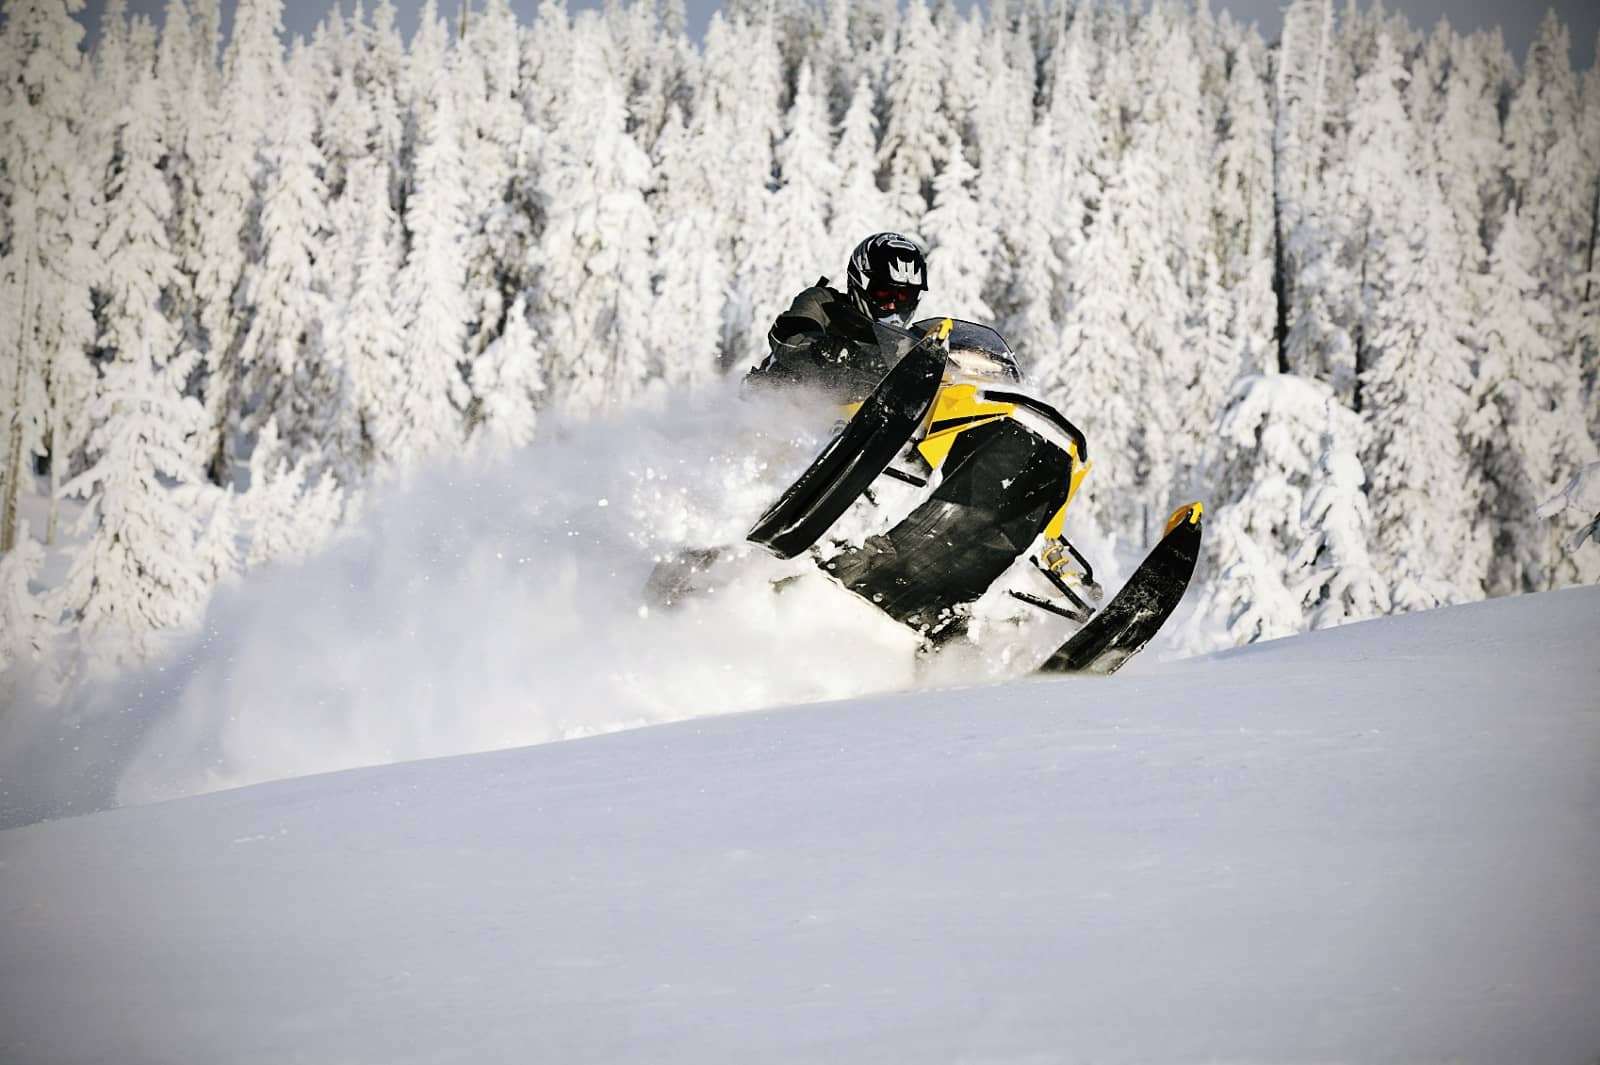 Snowmobile jumping through powdery snow